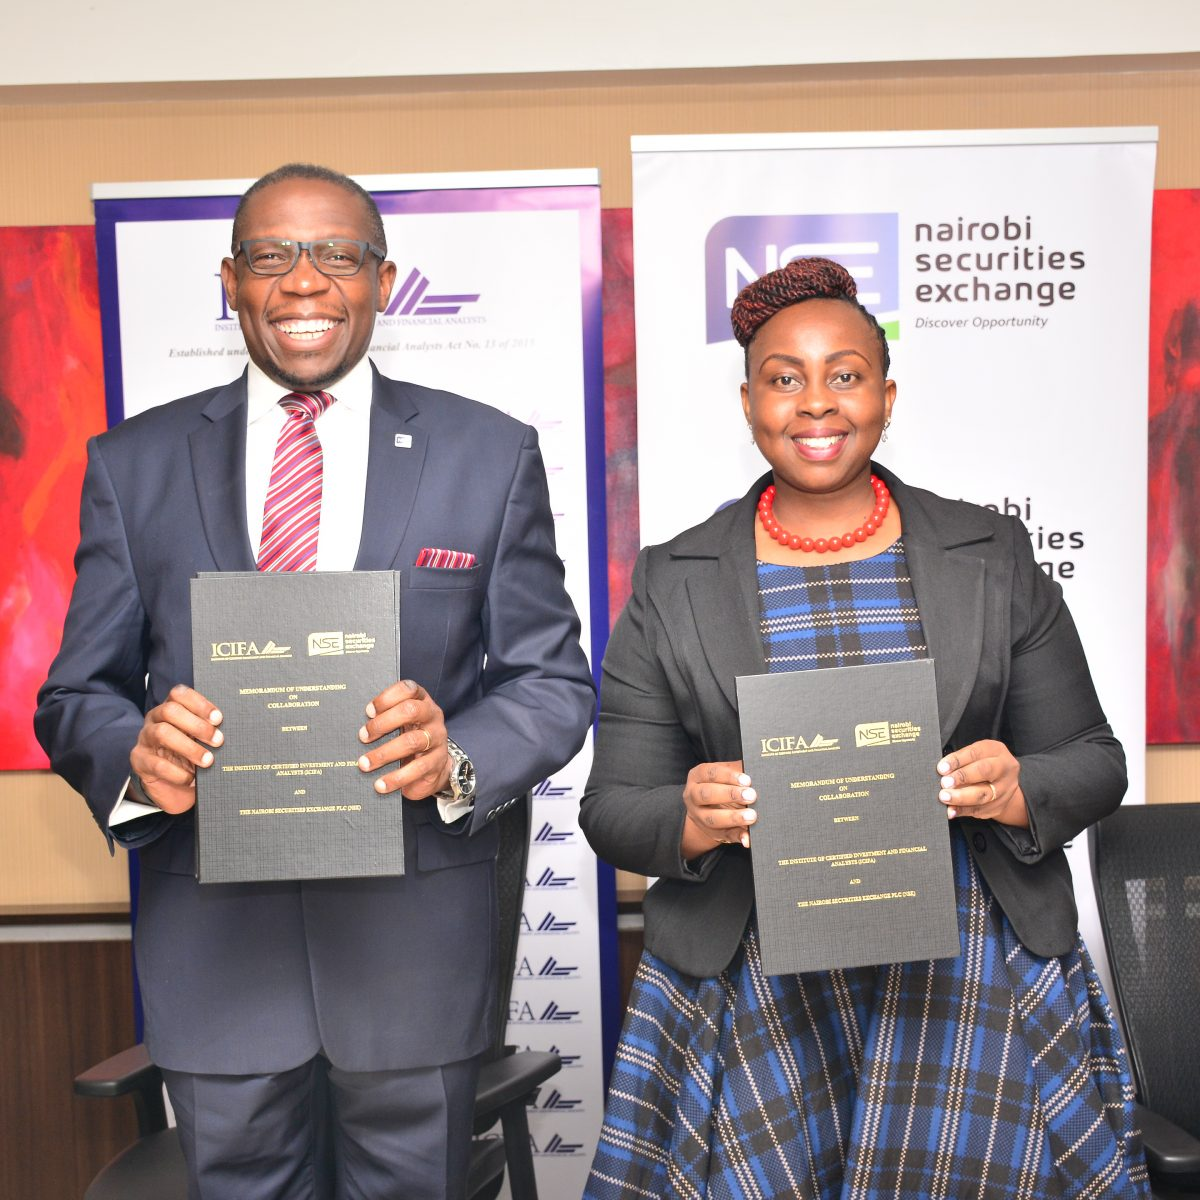 Nairobi Securities Exchange and the Institute of Certified Financial Analysts Sign MoU to Facilitate Collaborative Initiatives